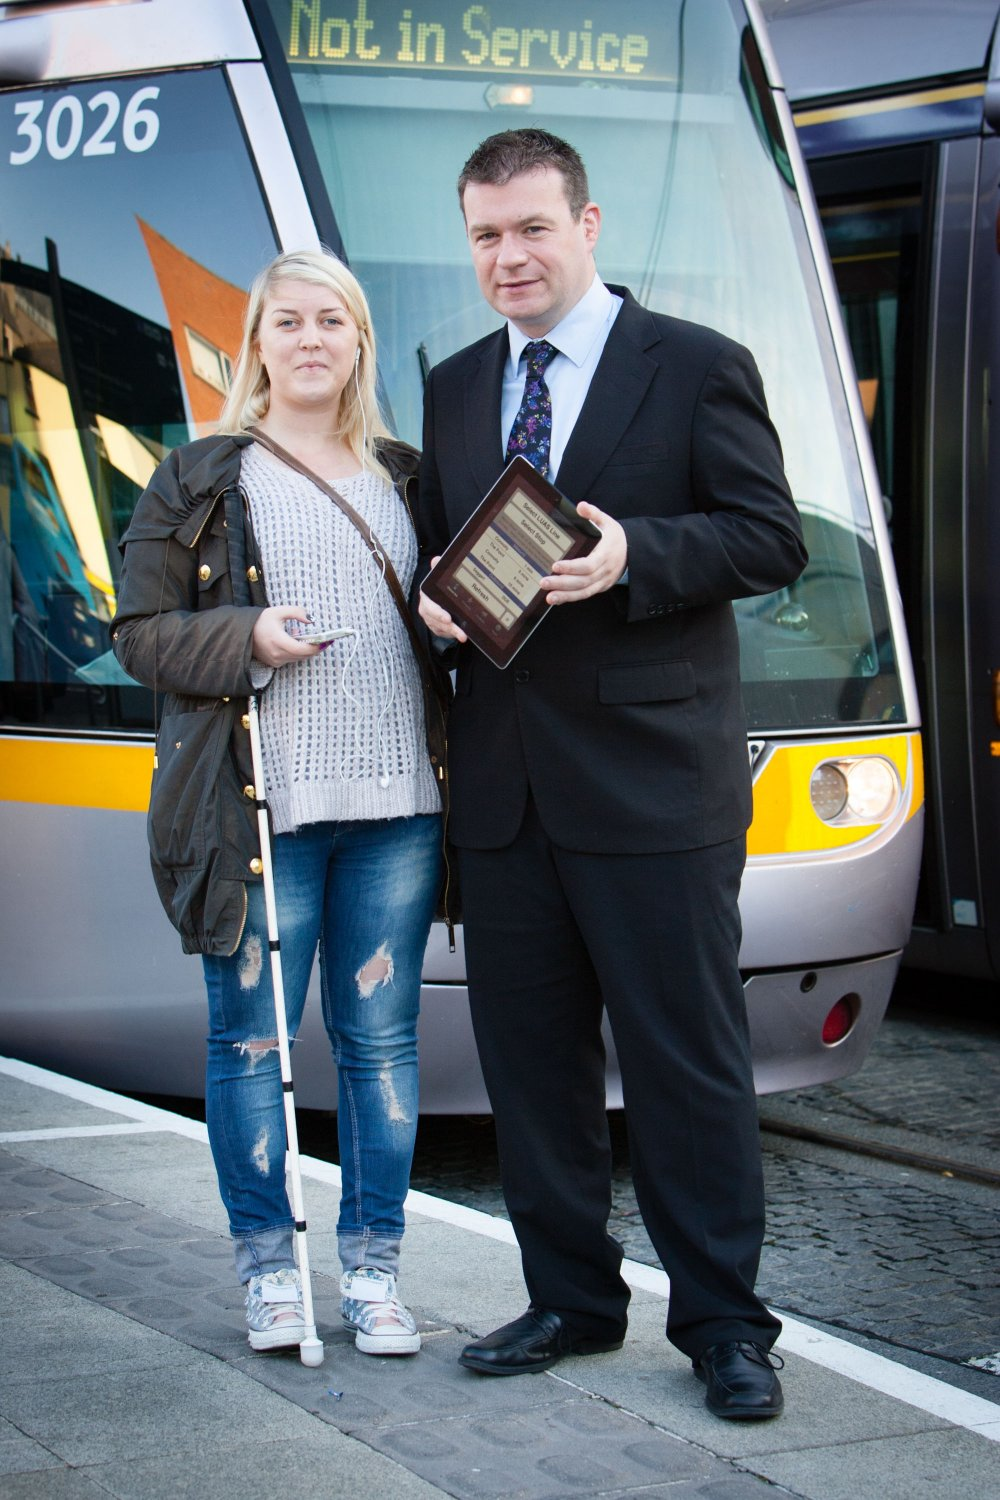 Claire Shorten from Ballinteer and Minister of State Alan Kelly TD